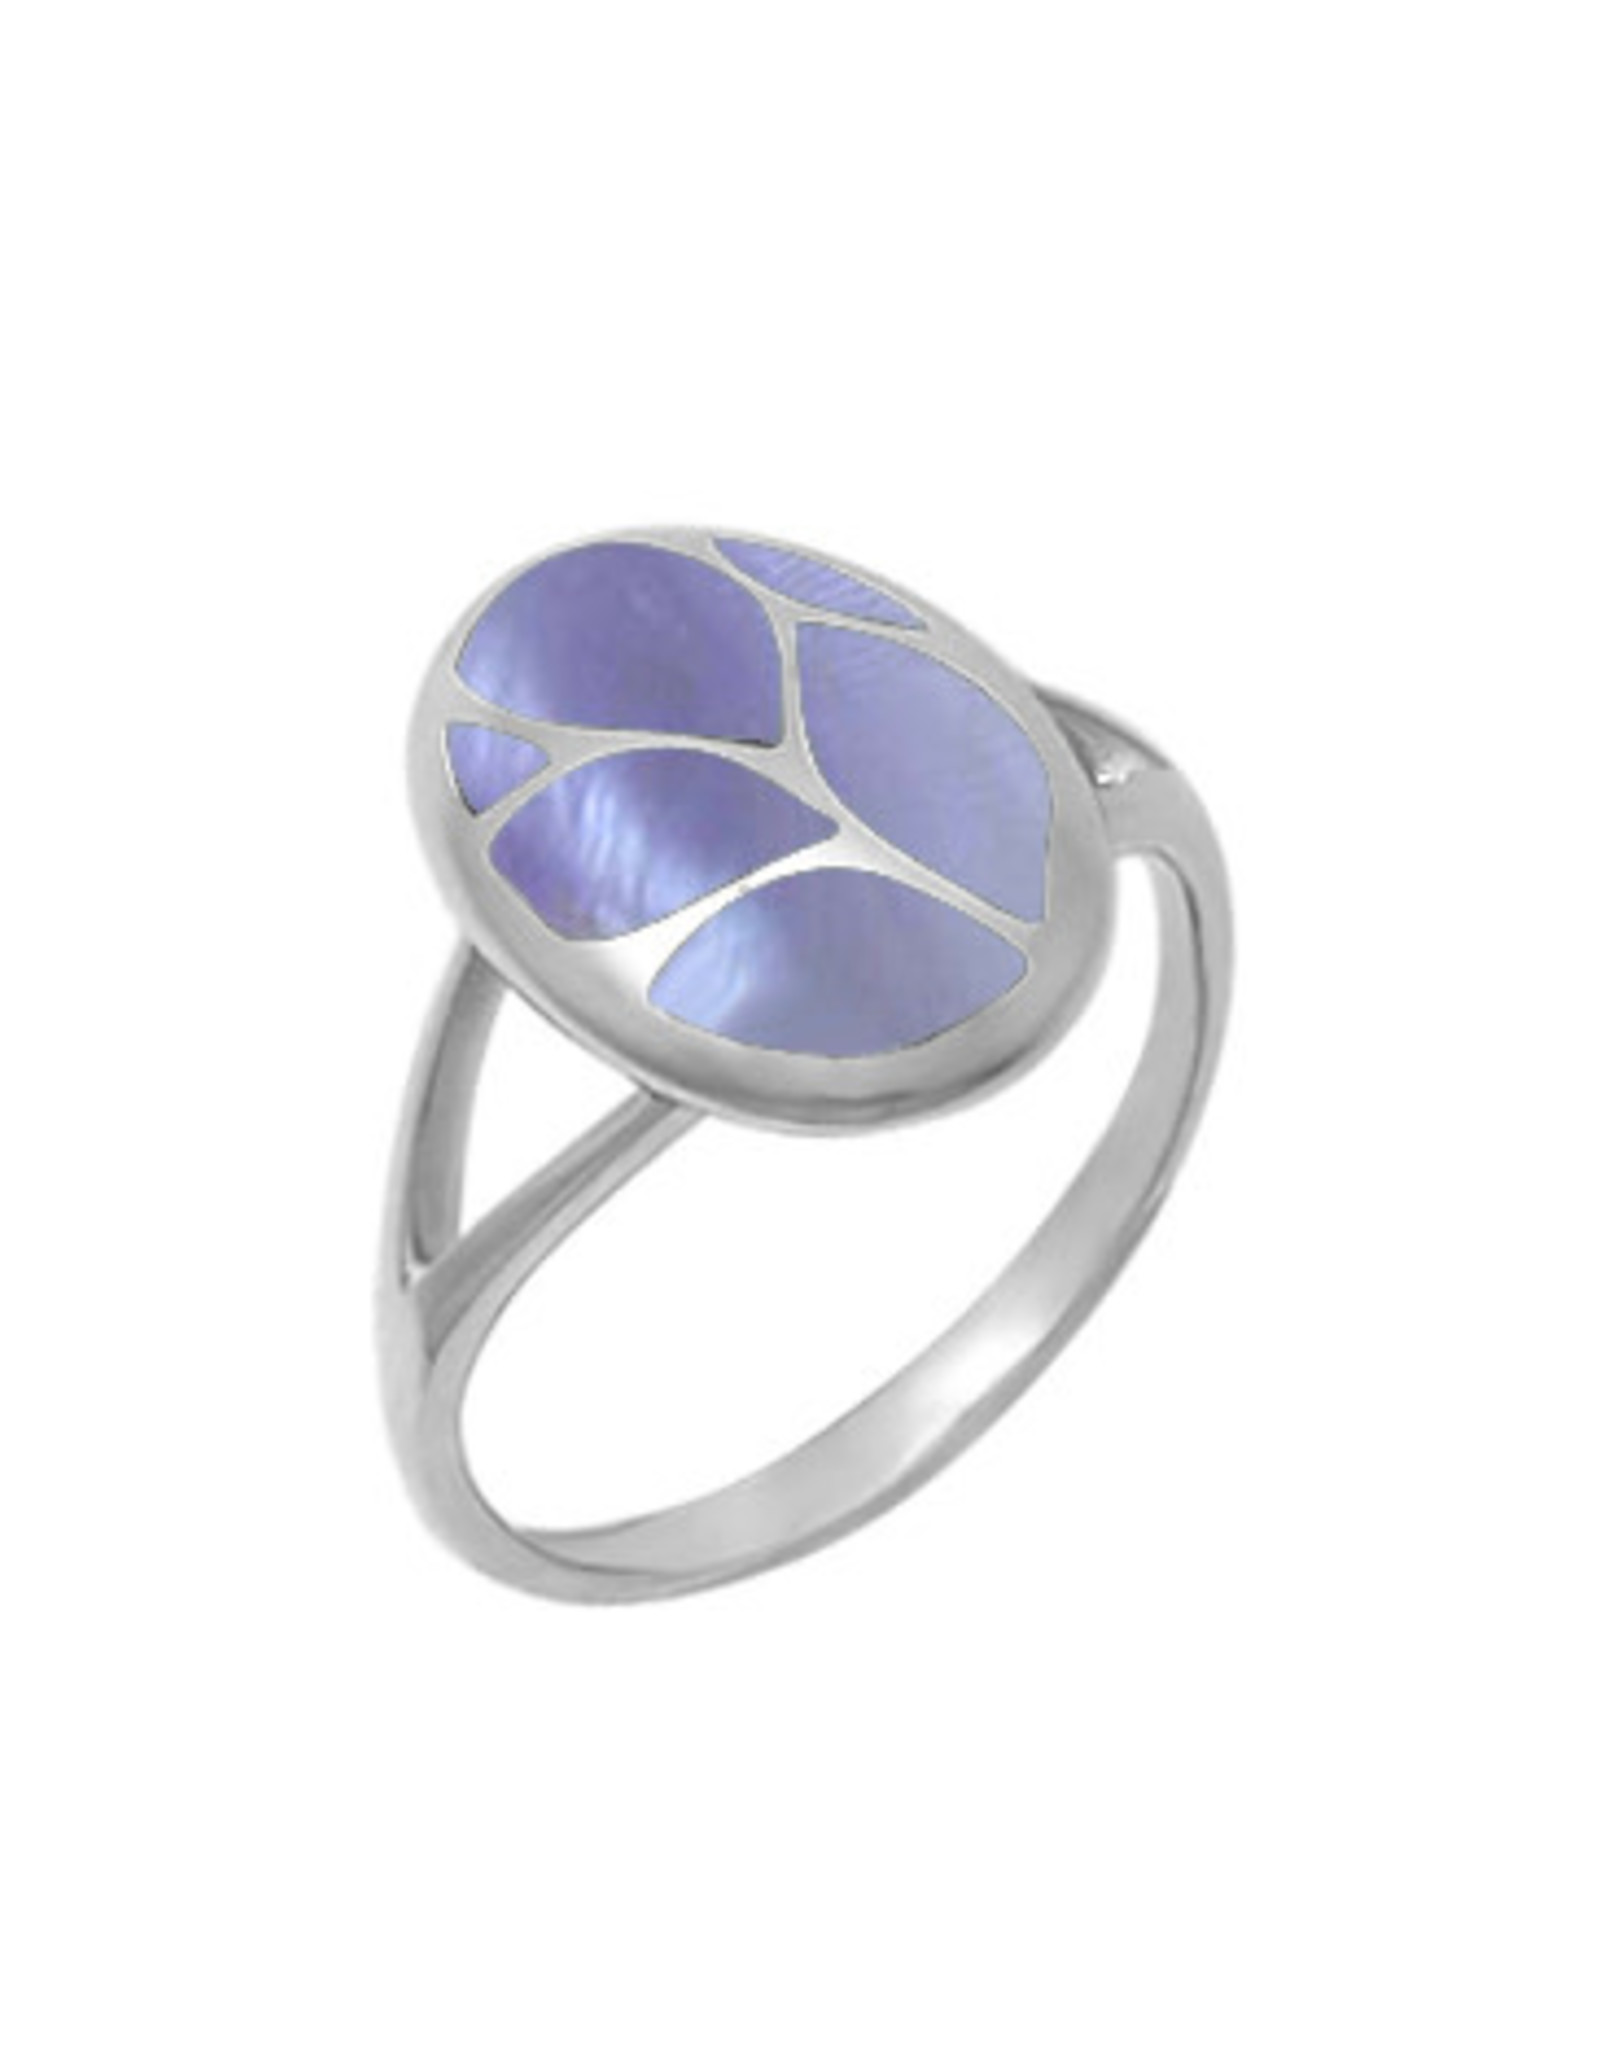 Boma OVAL PURPLE MOTHER OF PEARL RING SILVER